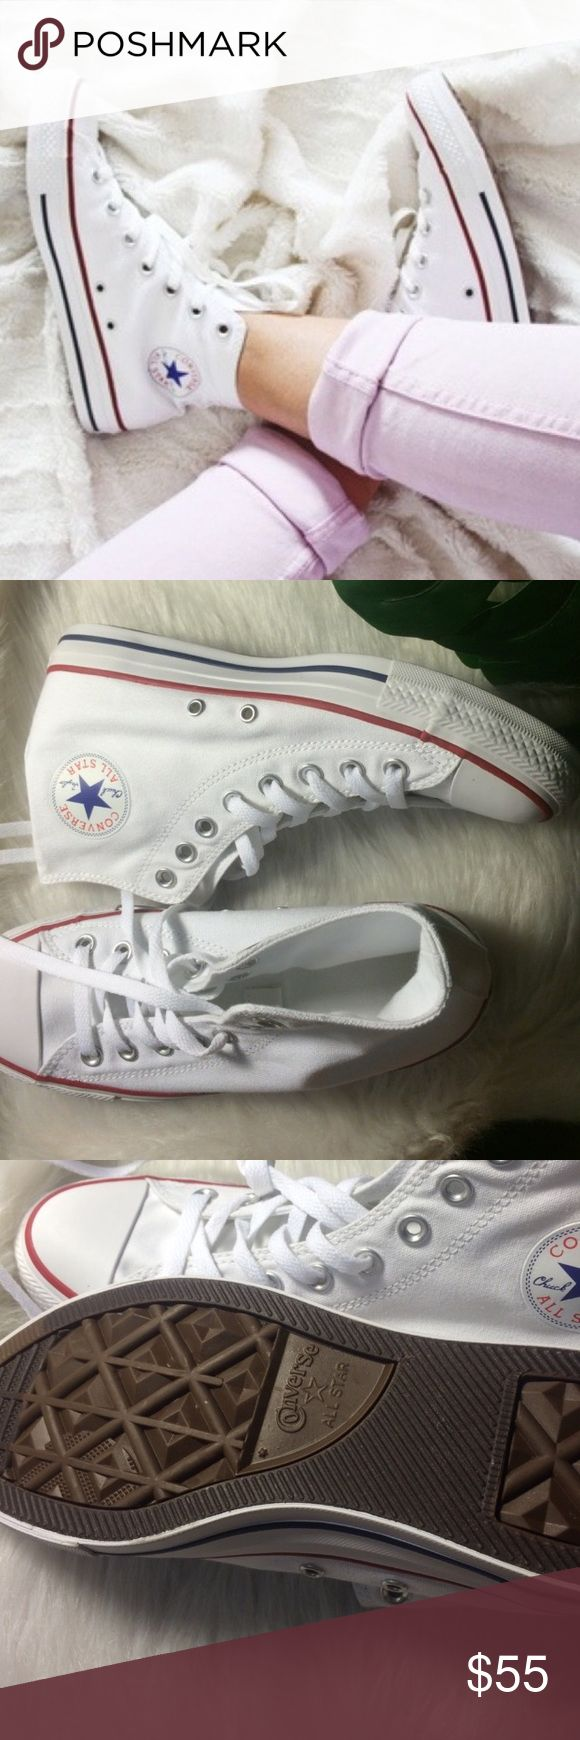 CONVERSE SIZE 9 WOMENS ALL WHITE CHUCK TAYLOR New without box. Size 9 WOMENS Converse Shoes Sneakers